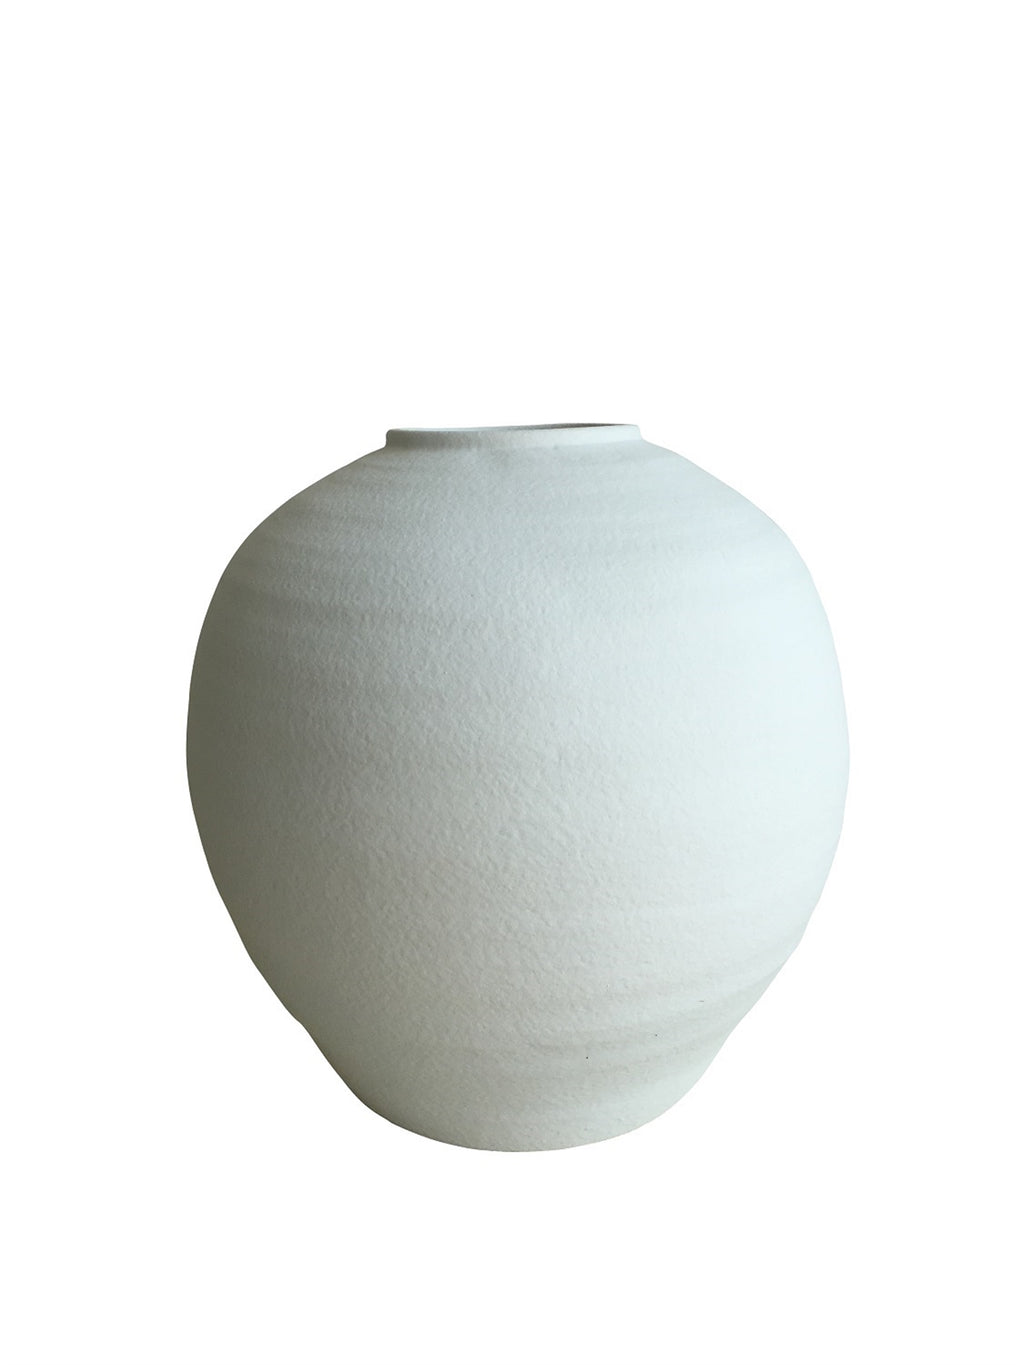 Ceramic Limpio Urn Vase in White - AboutRuby.com